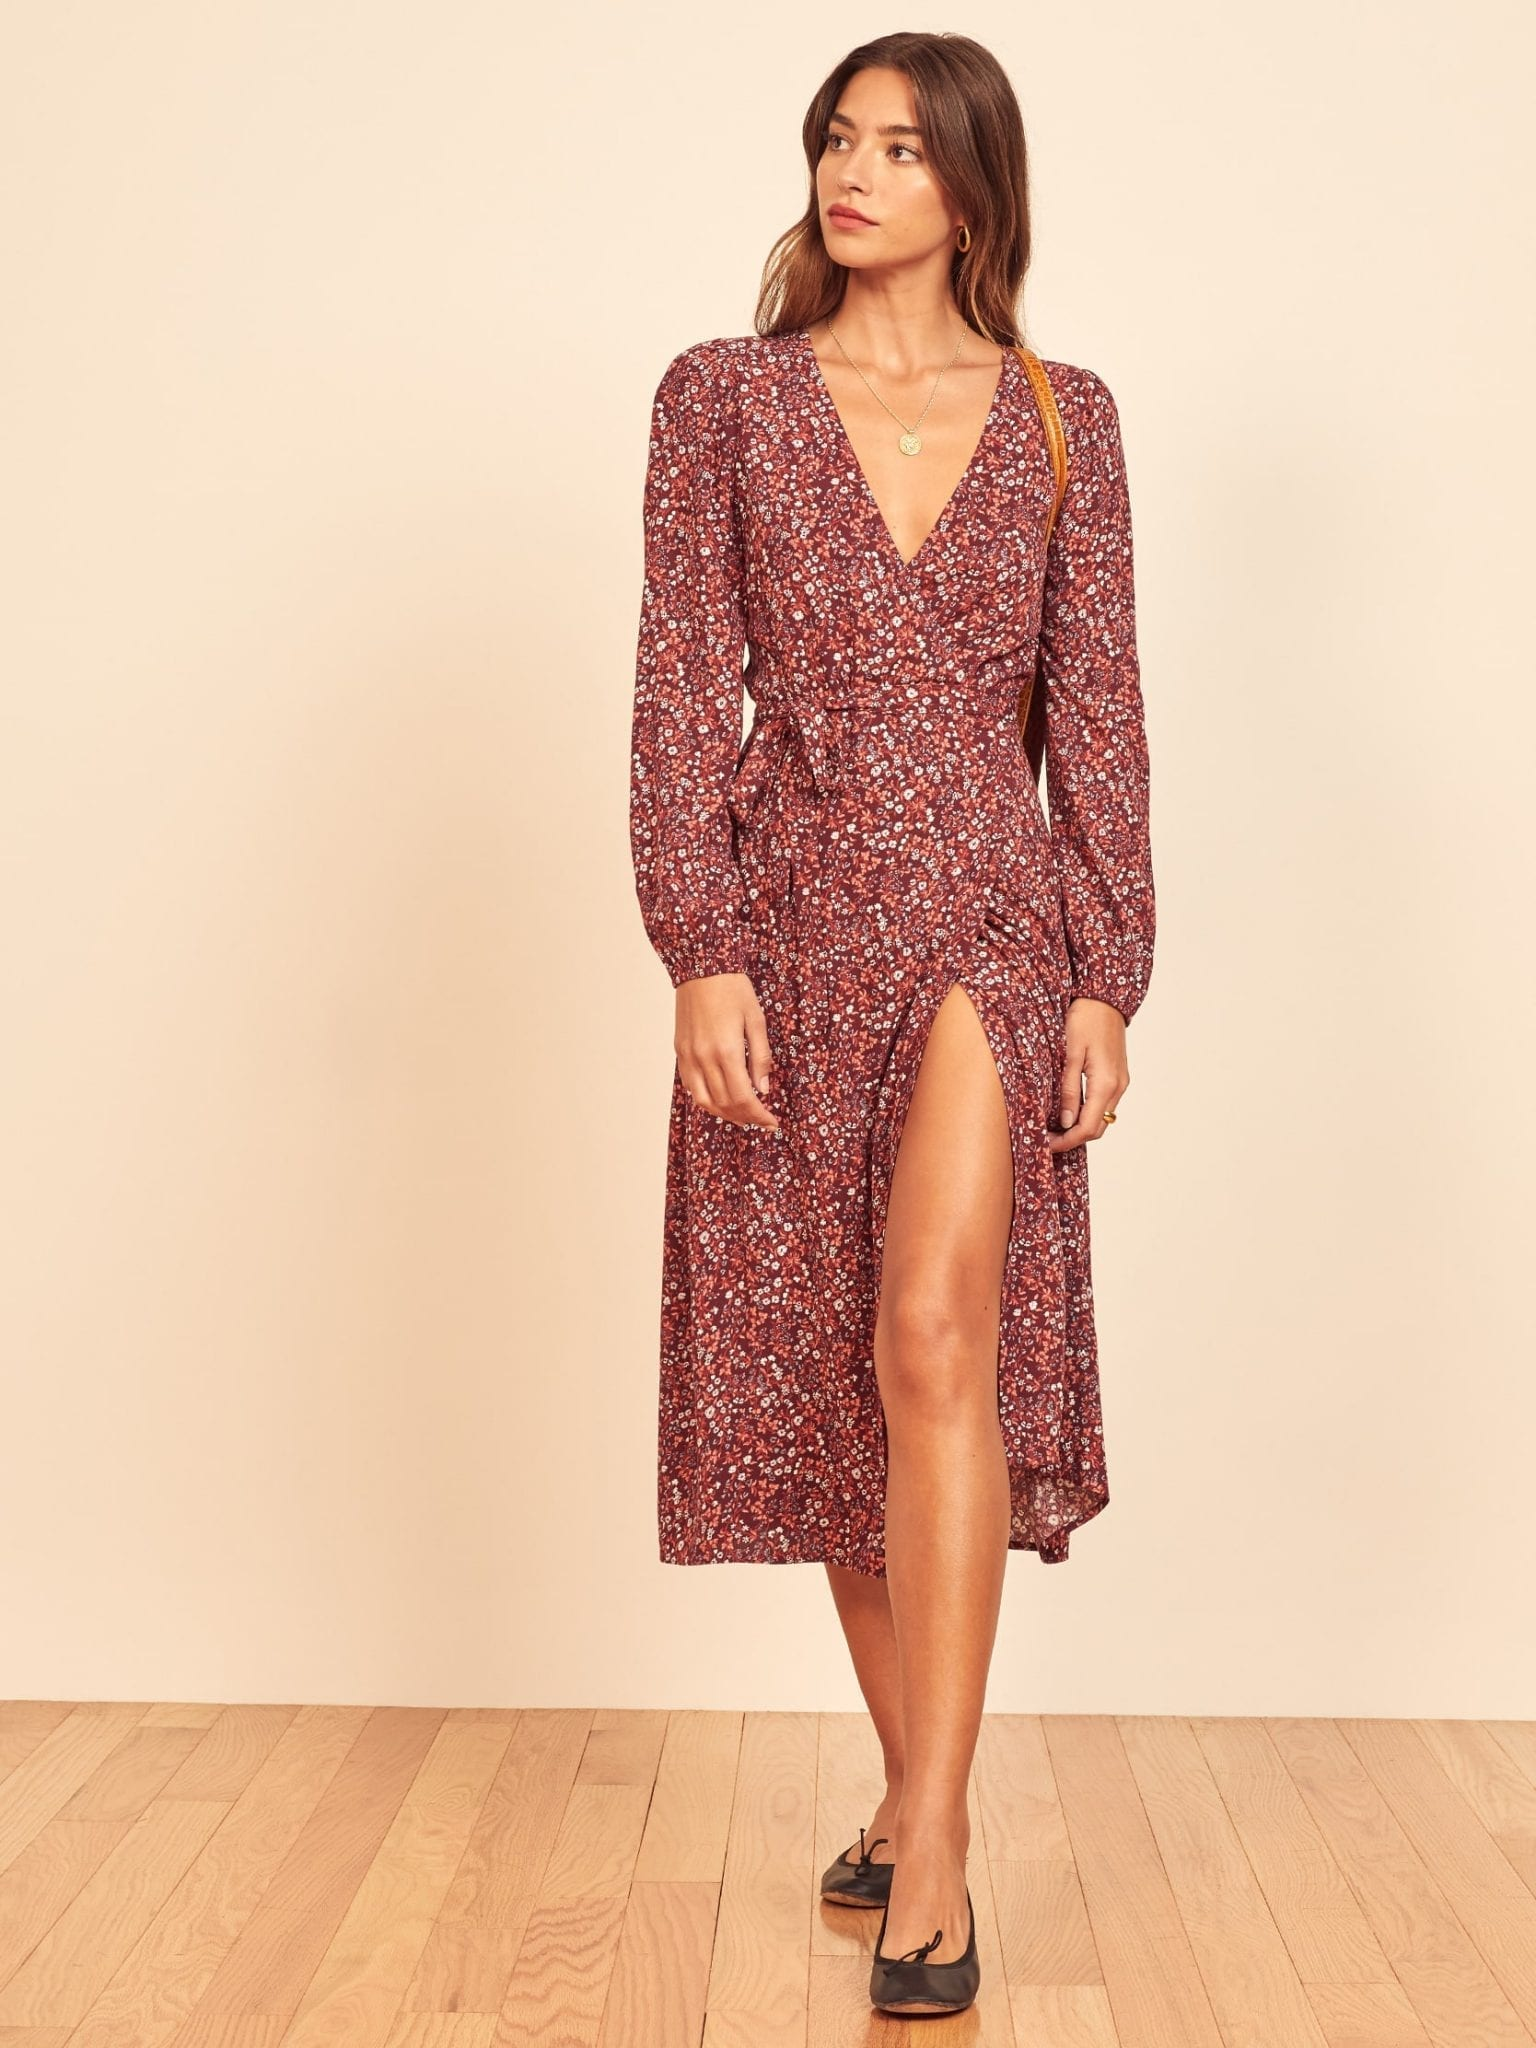 REFORMATION Liva Dress